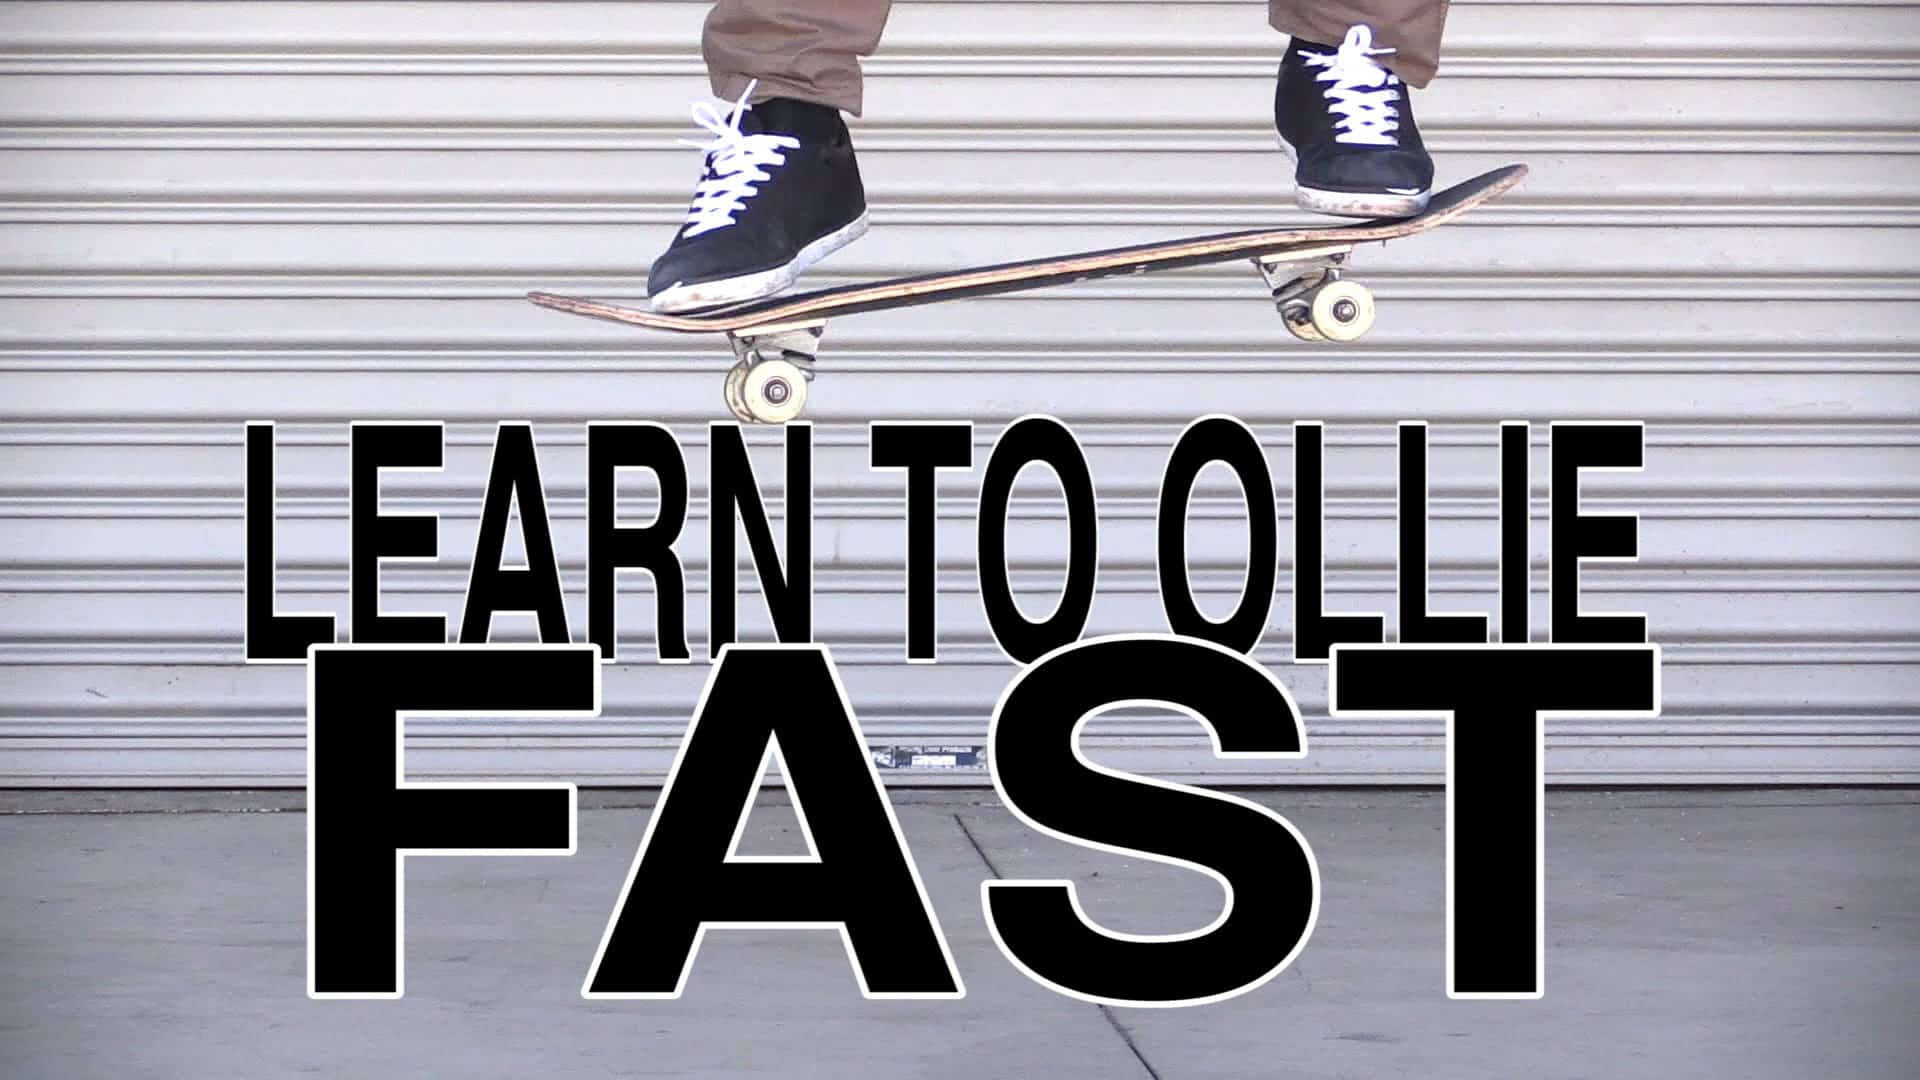 how to ollie manual on a skateboard